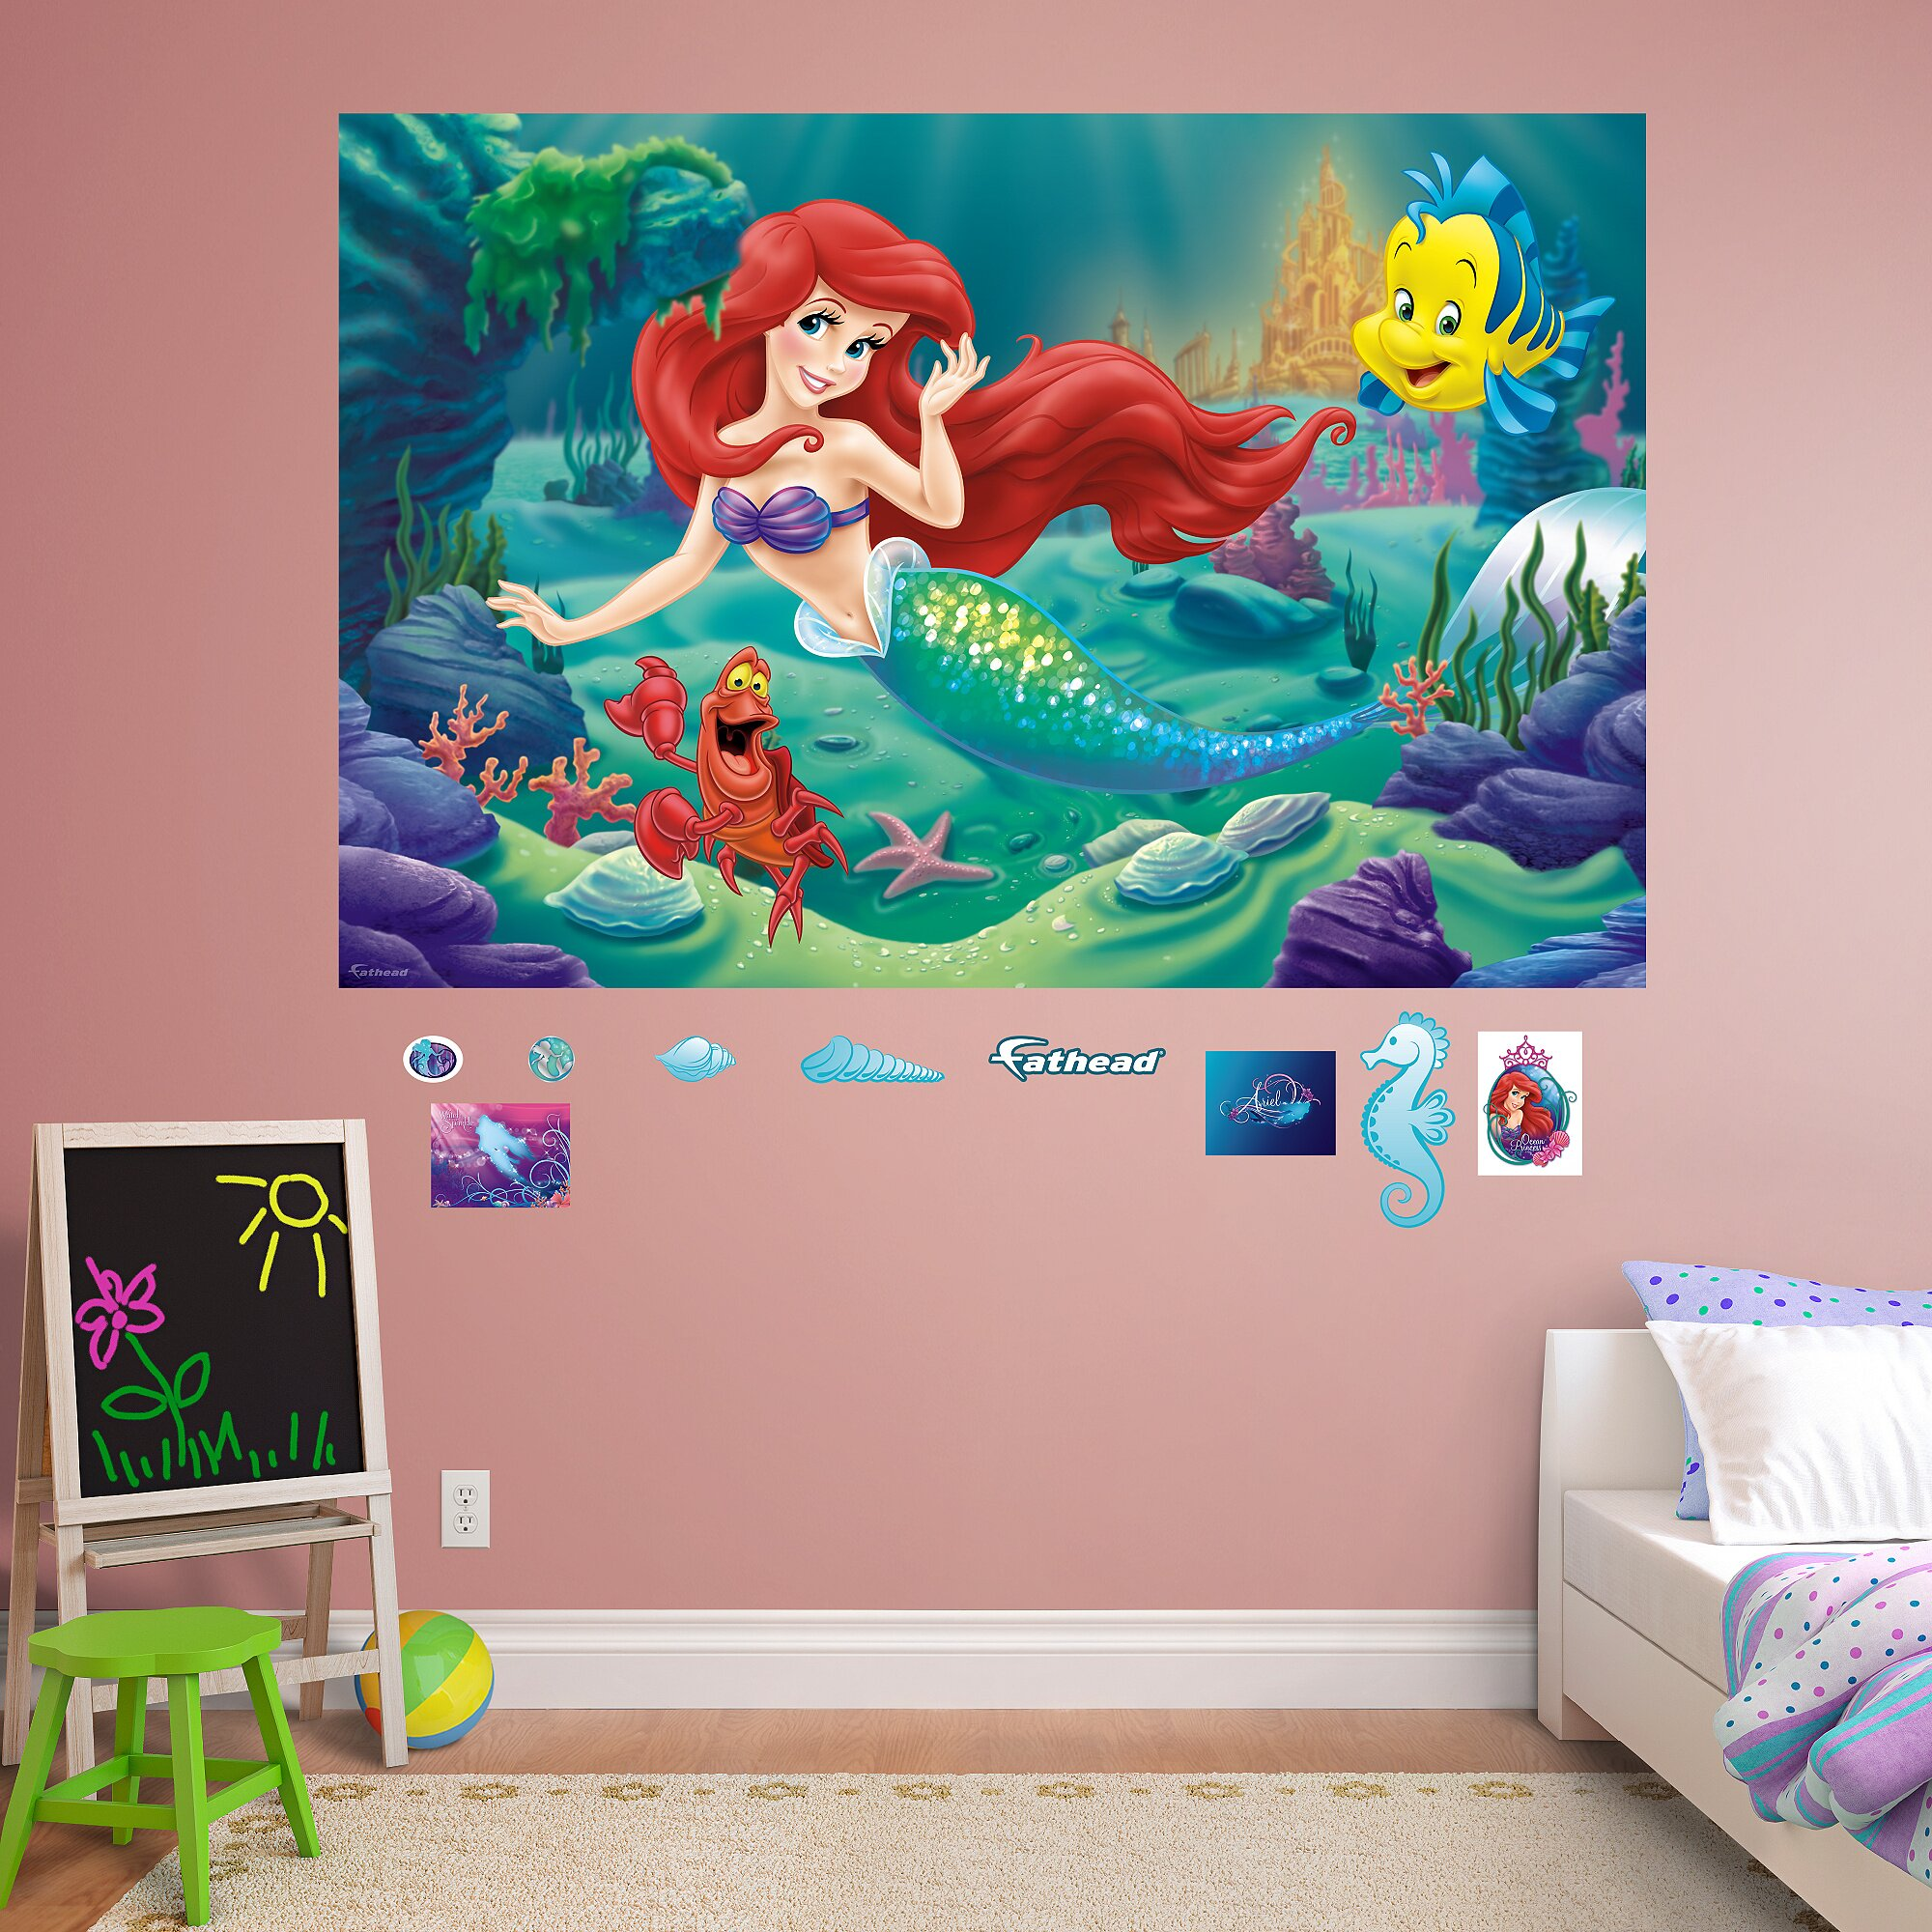 Fathead Disney - The Little Mermaid Peel and Stick Wall Decal